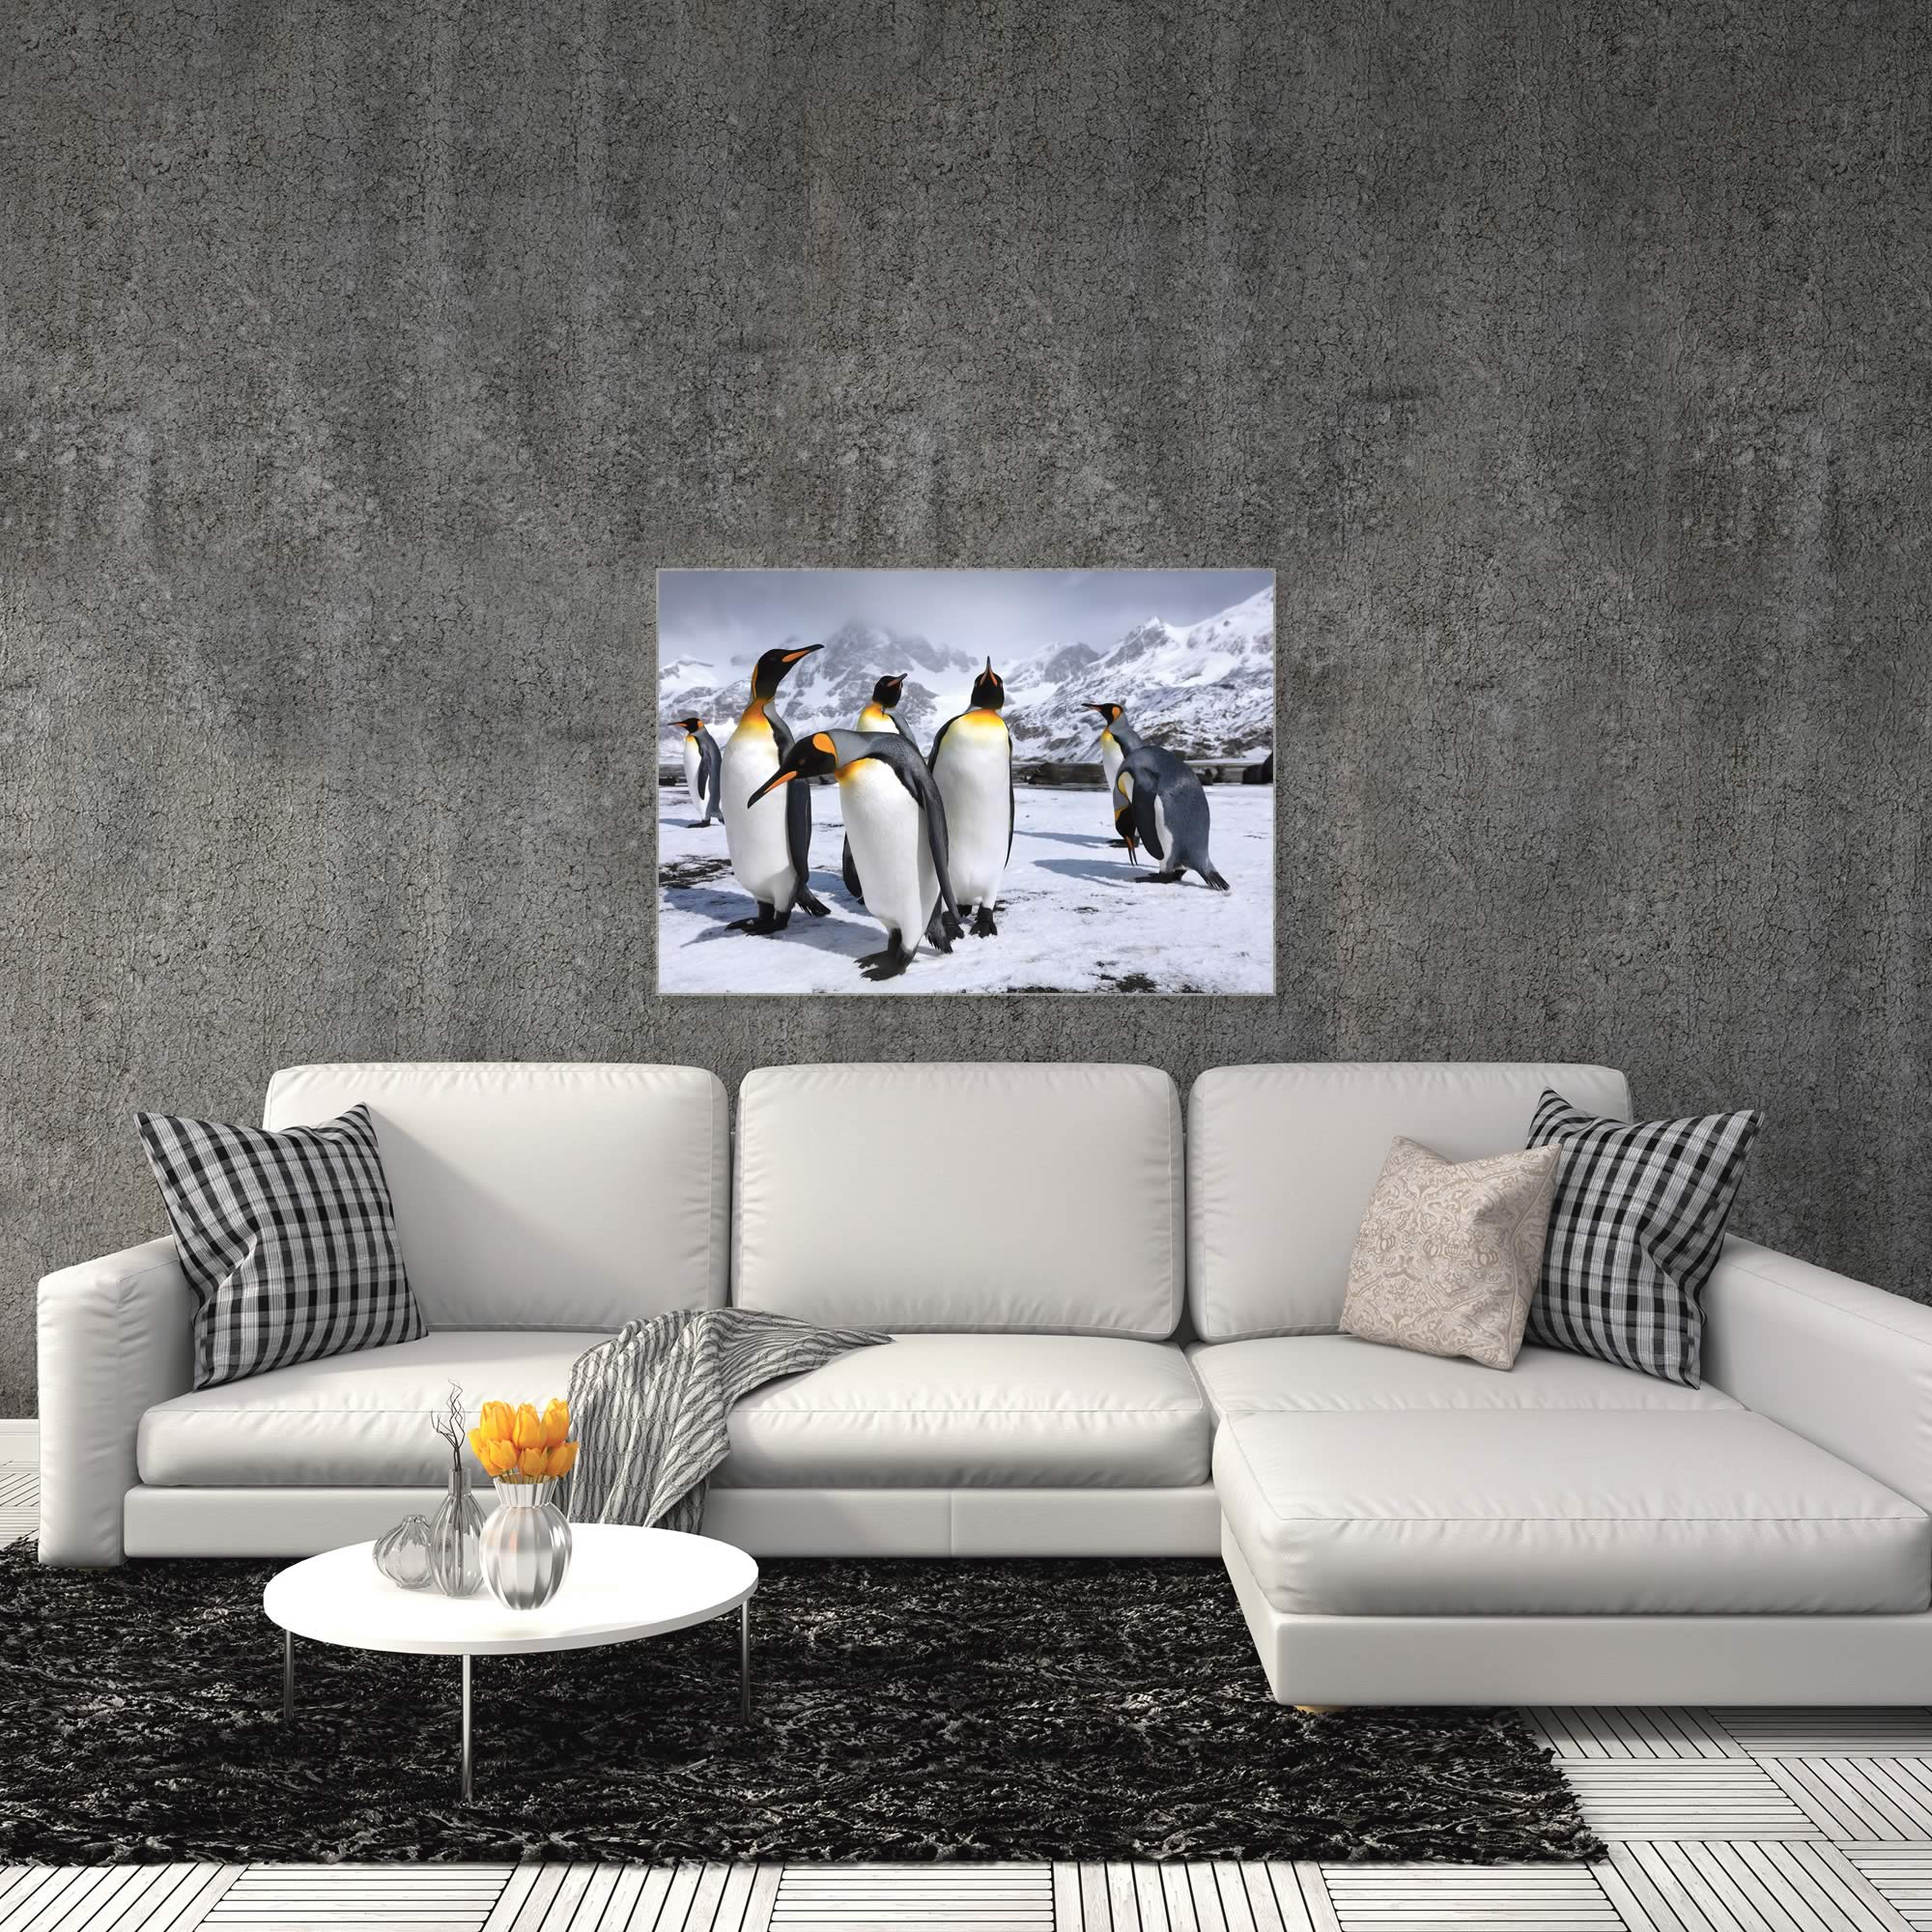 King Penguins at the Bay by Steph Oli - Penguin Wall Art on Metal or Acrylic - Alternate View 3